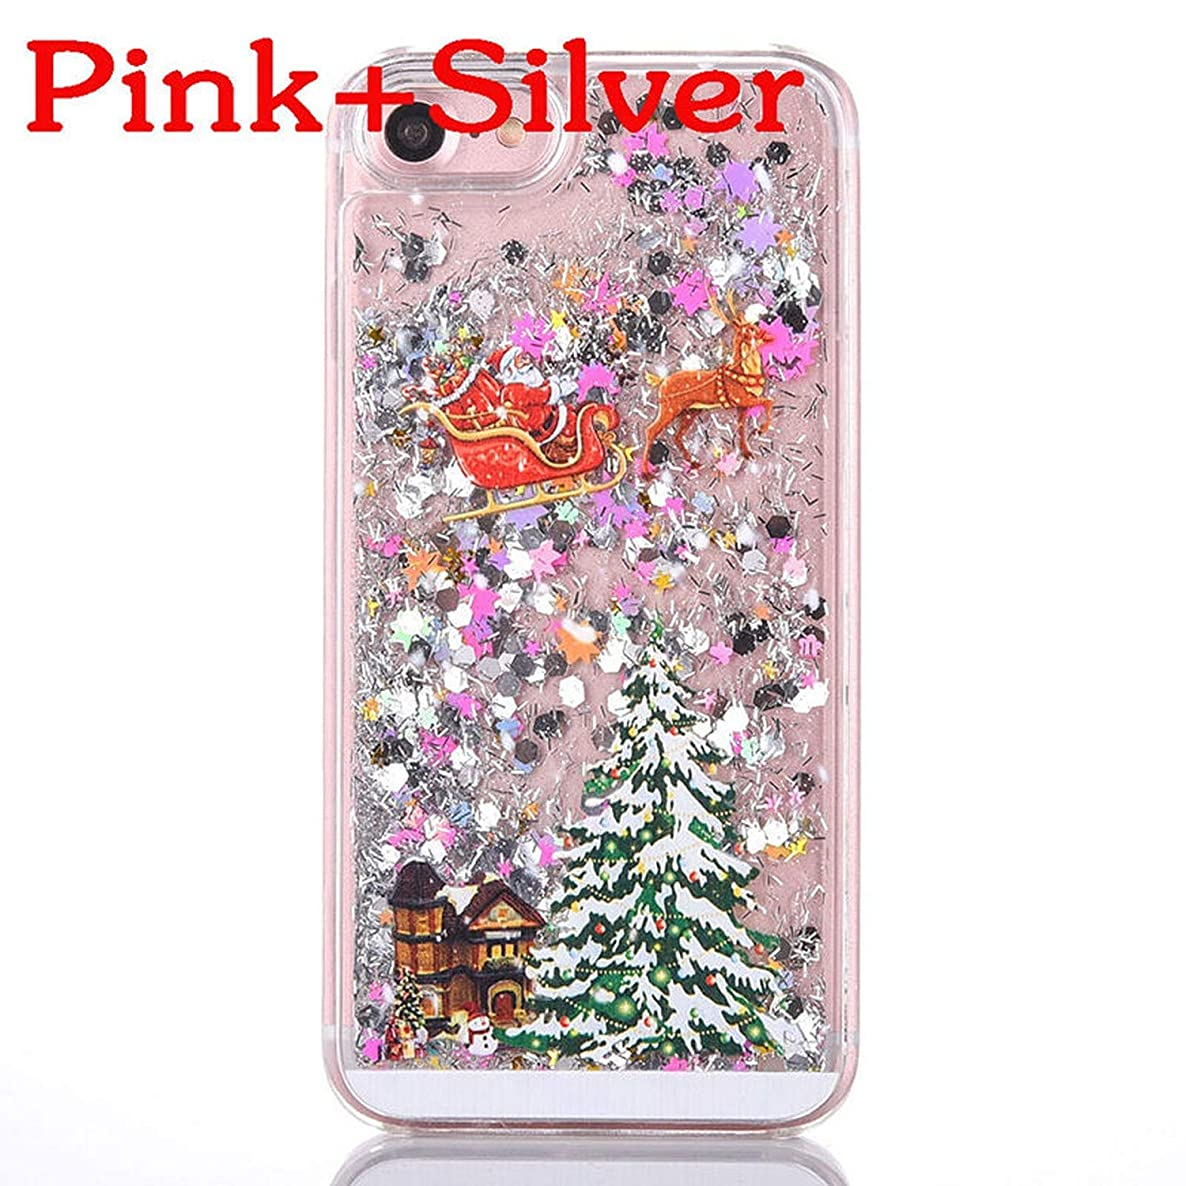 Luxury Glitter Quicksand Christmas Tree Shining Liquid Phone case iPhone 6 6S Plus 7 7 Plus Fashion Bling Dynamic Back Cover,Pink Silver iPhone 6 6S